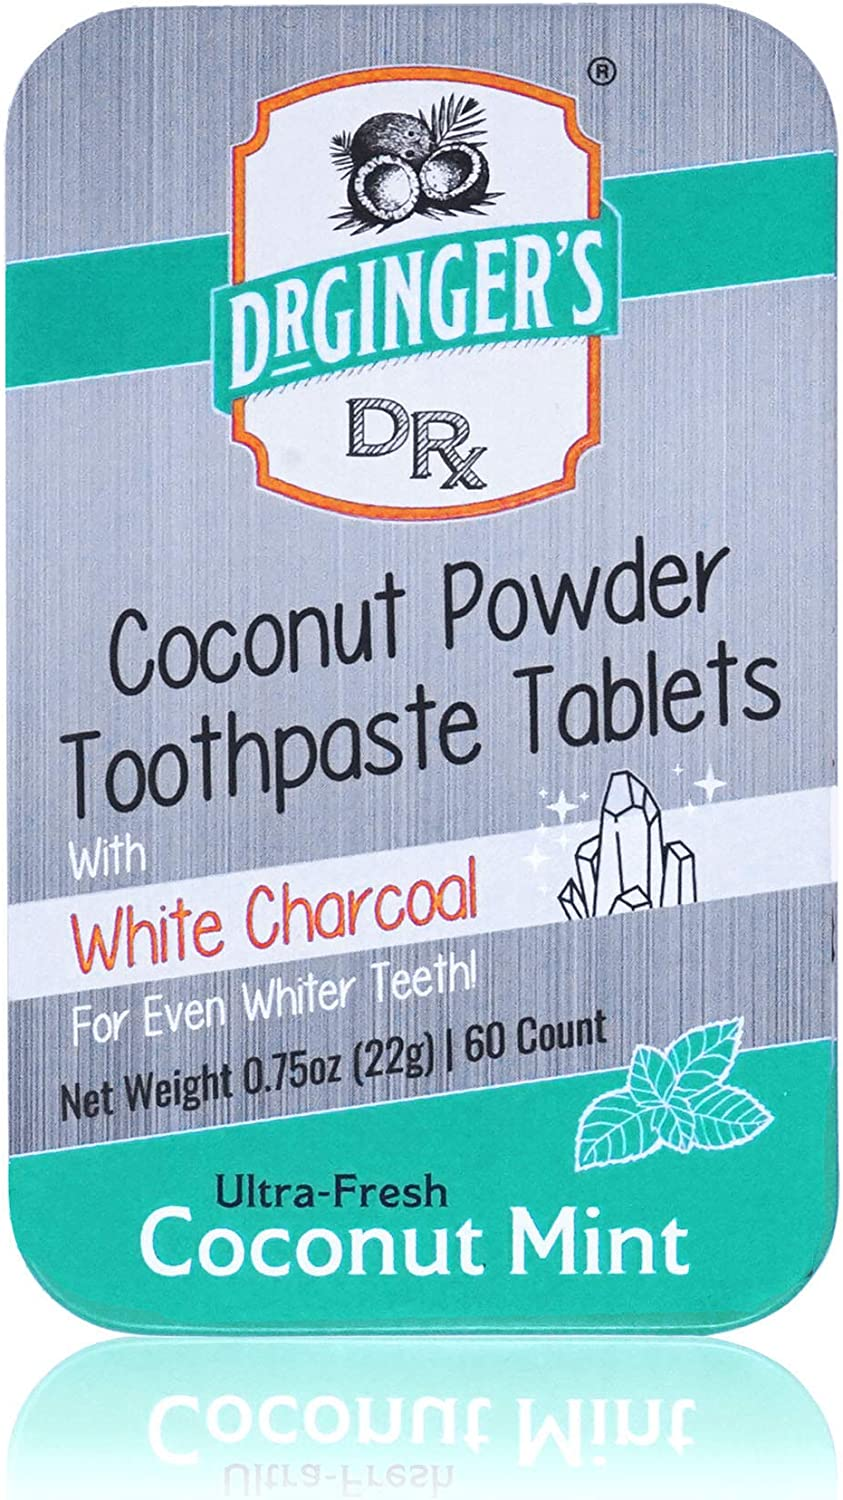 White Charcoal Max 59% OFF Quantity limited Toothpaste Tablets